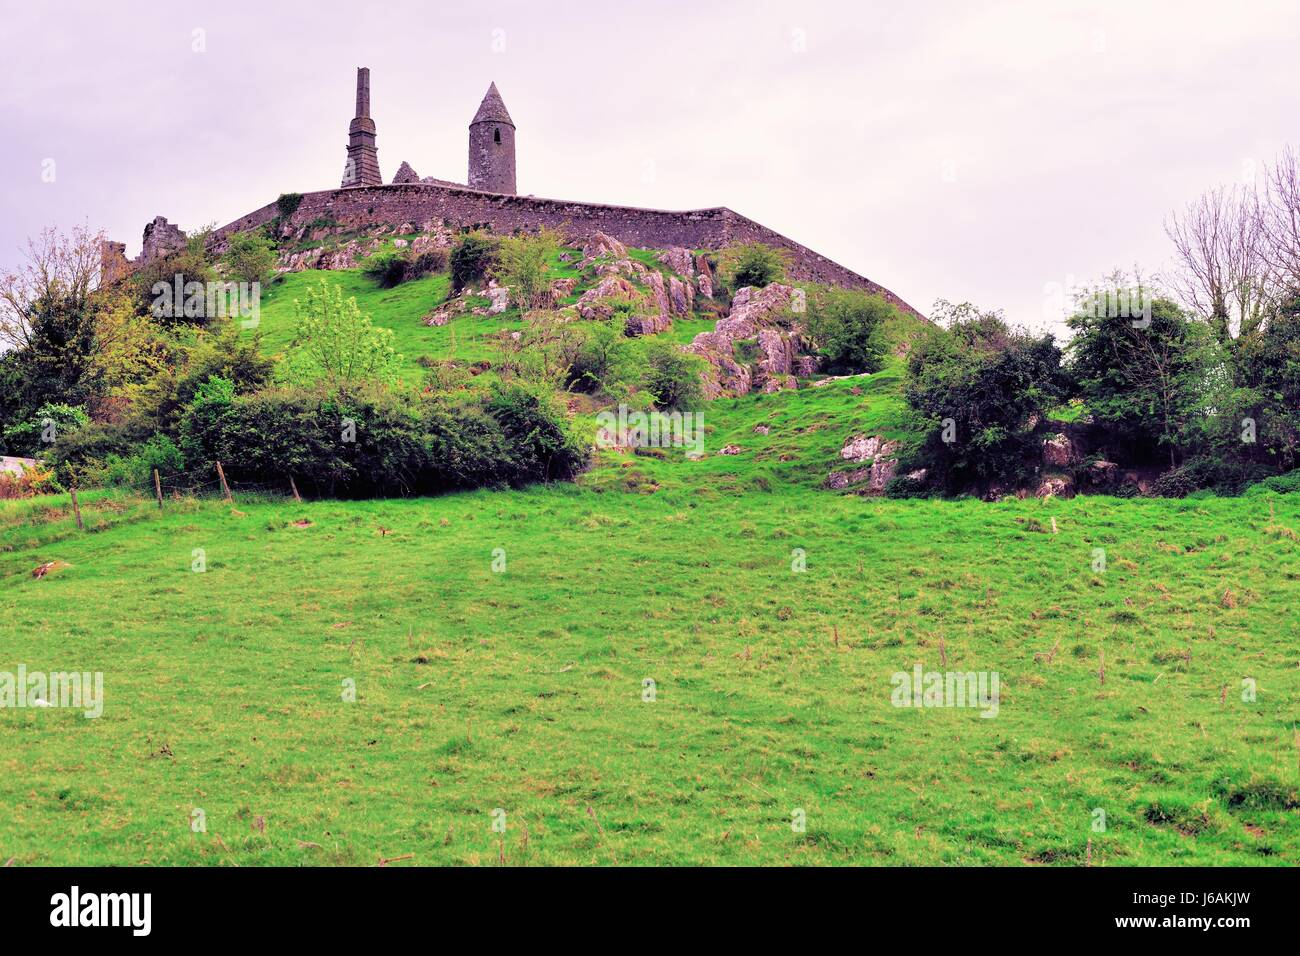 The Rock of Cashel rising above the Irish countryside in Cashel, County Tipperary, Ireland. - Stock Image